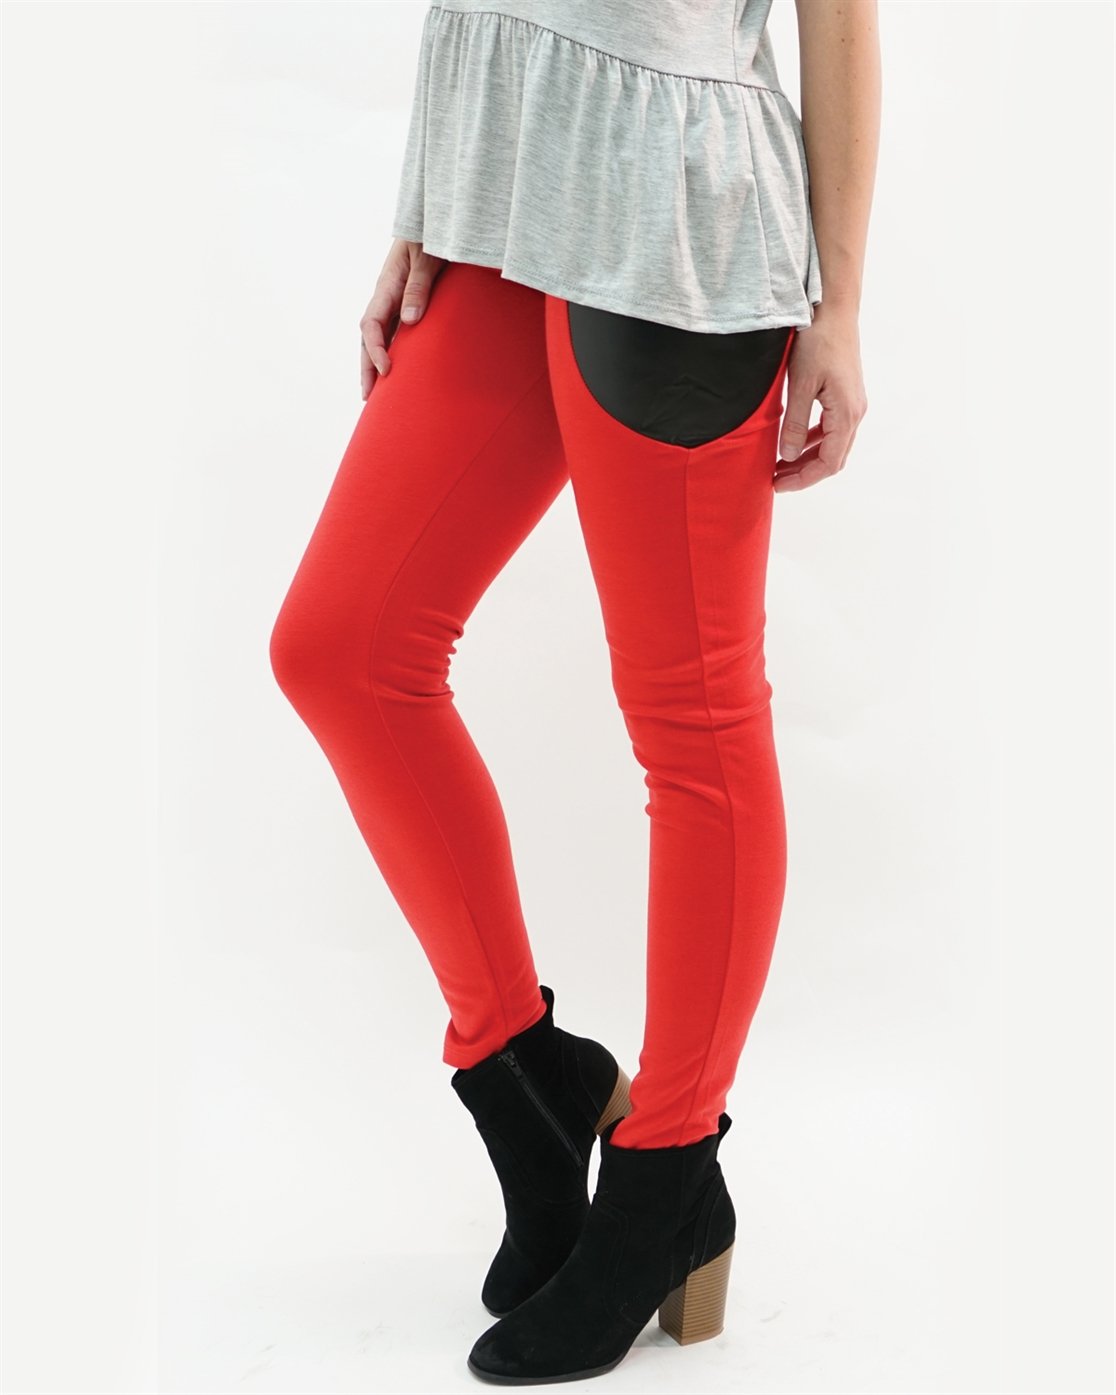 FAUX LEATHER ACCENT LEGGINGS - orangeshine.com